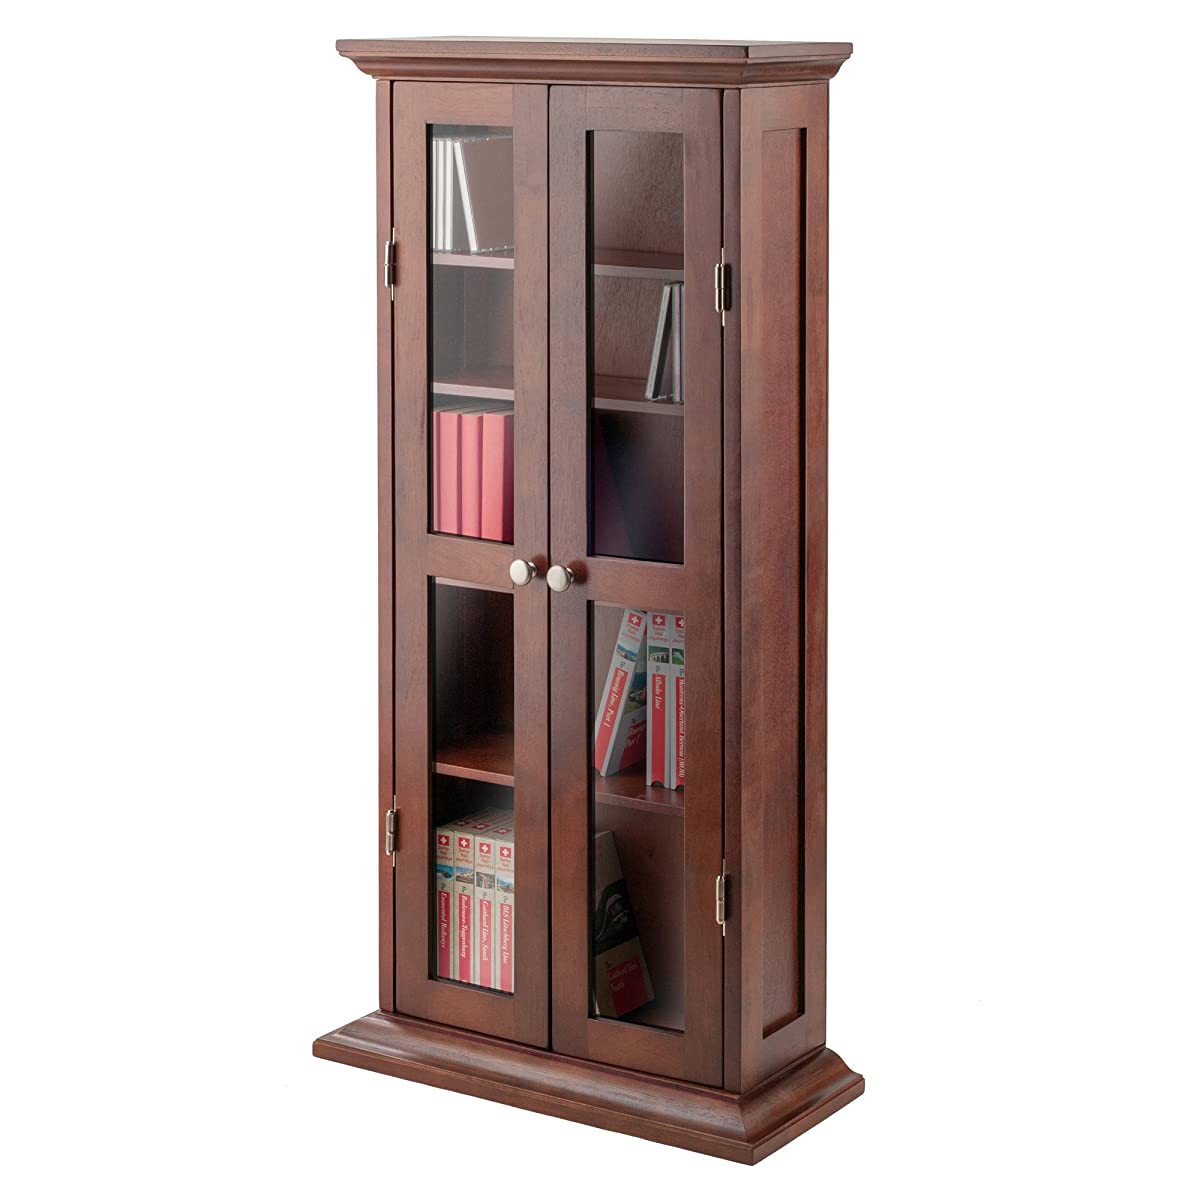 Winsome Wood CD/DVD Cabinet with Glass Doors, Antique Walnut